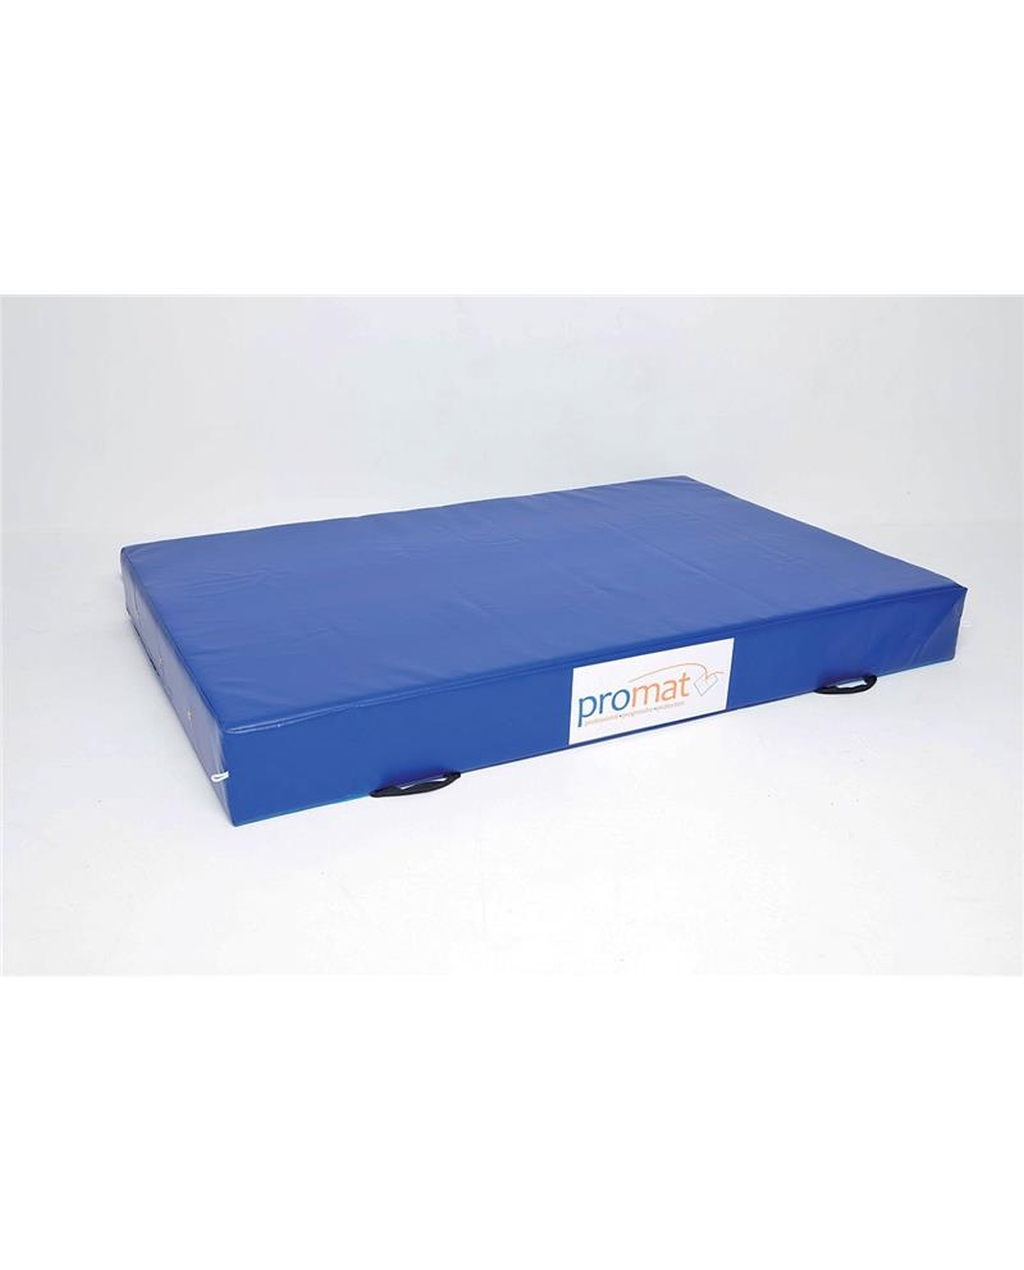 CRASH MAT 2.44M X 1.37M X 300MM